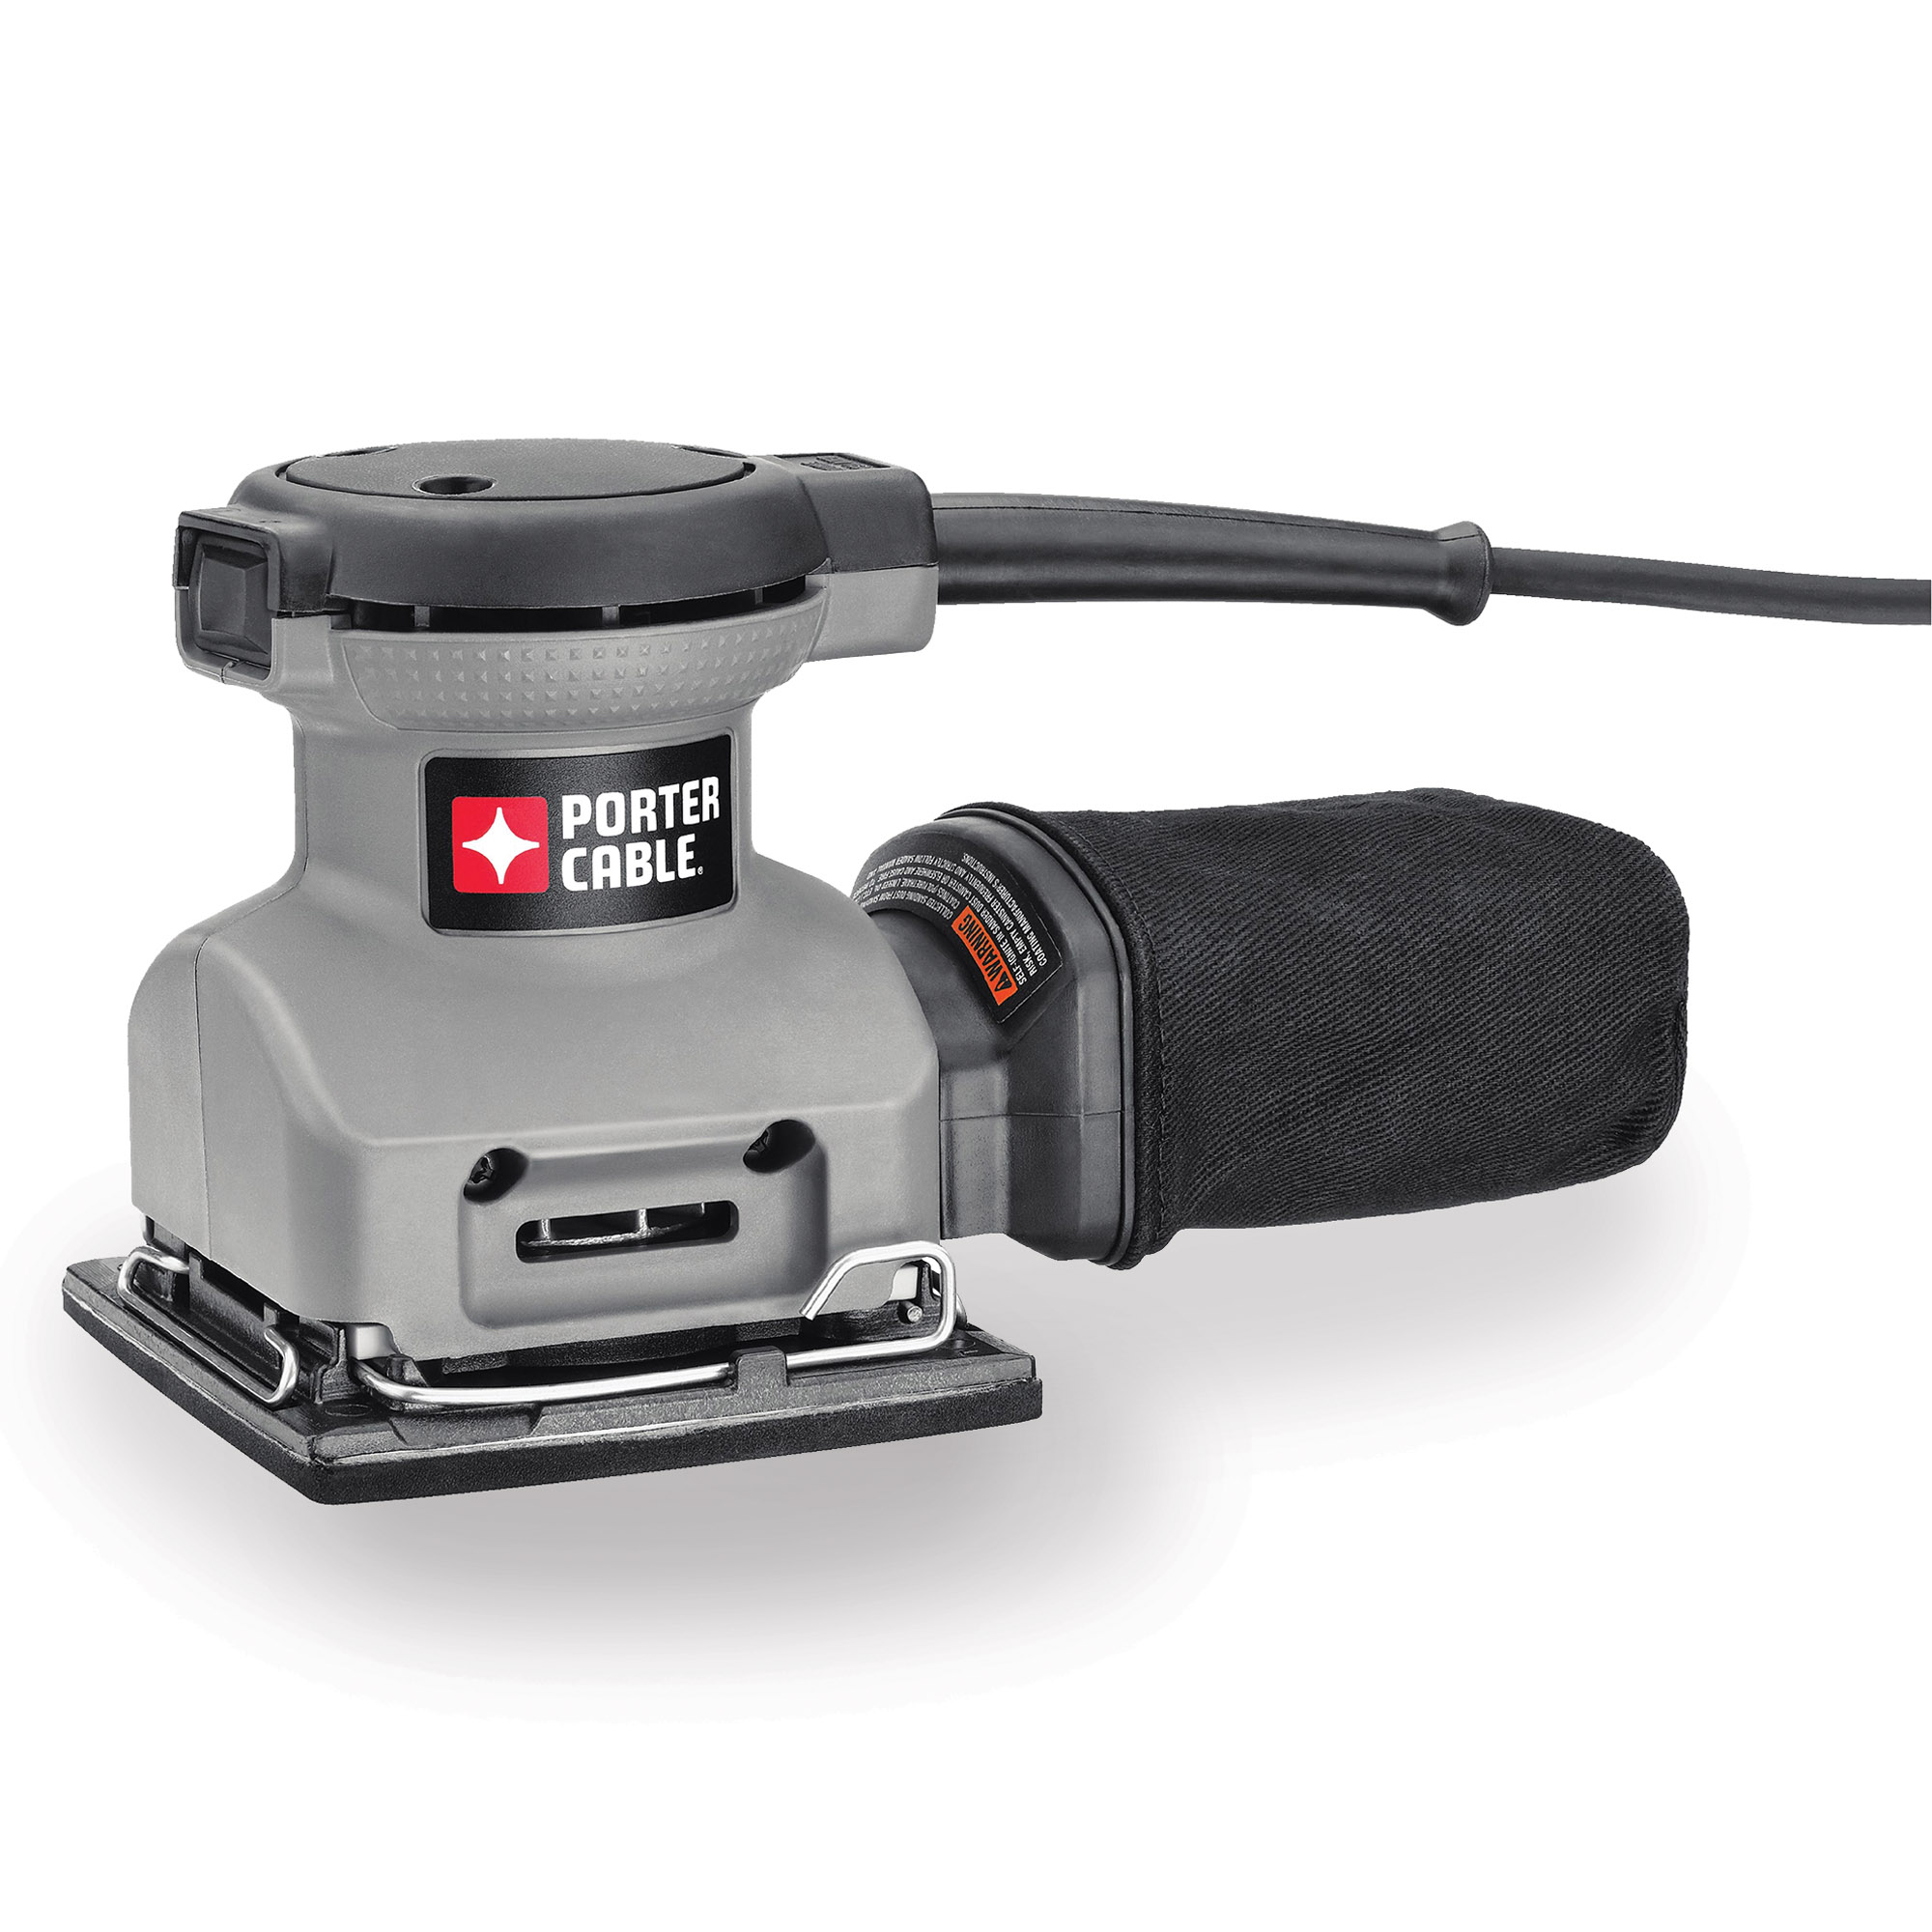 Sand butcherblock counters, freshen up unpainted trim moulding, and even plane shavings off a sticky door with this random orbital palm sander. The single-speed sander takes quarter sheets of sandpaper, so no need to buy proprietary sheets. Porter-Cable, (888) 848-5175,portercable.com